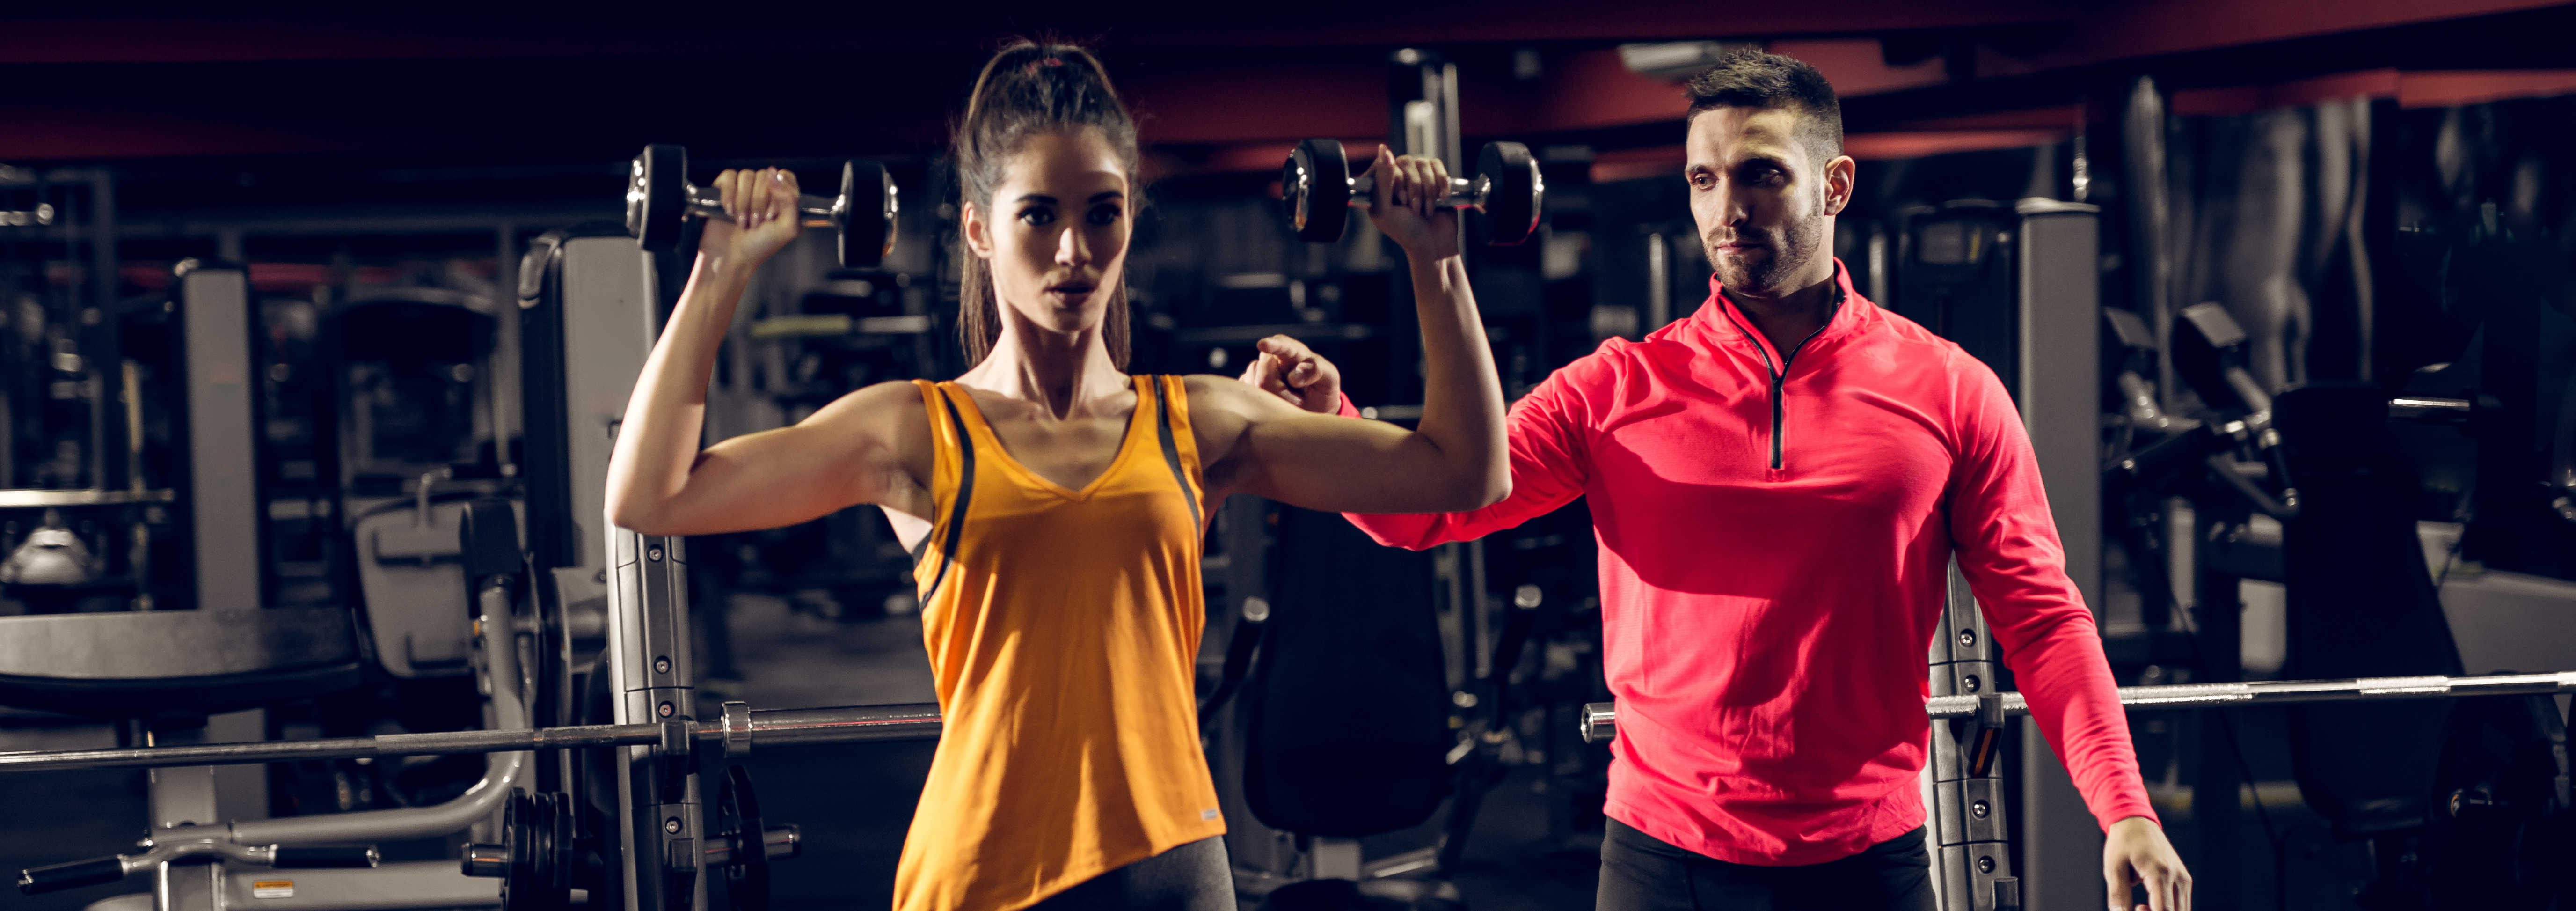 personal-trainer-1